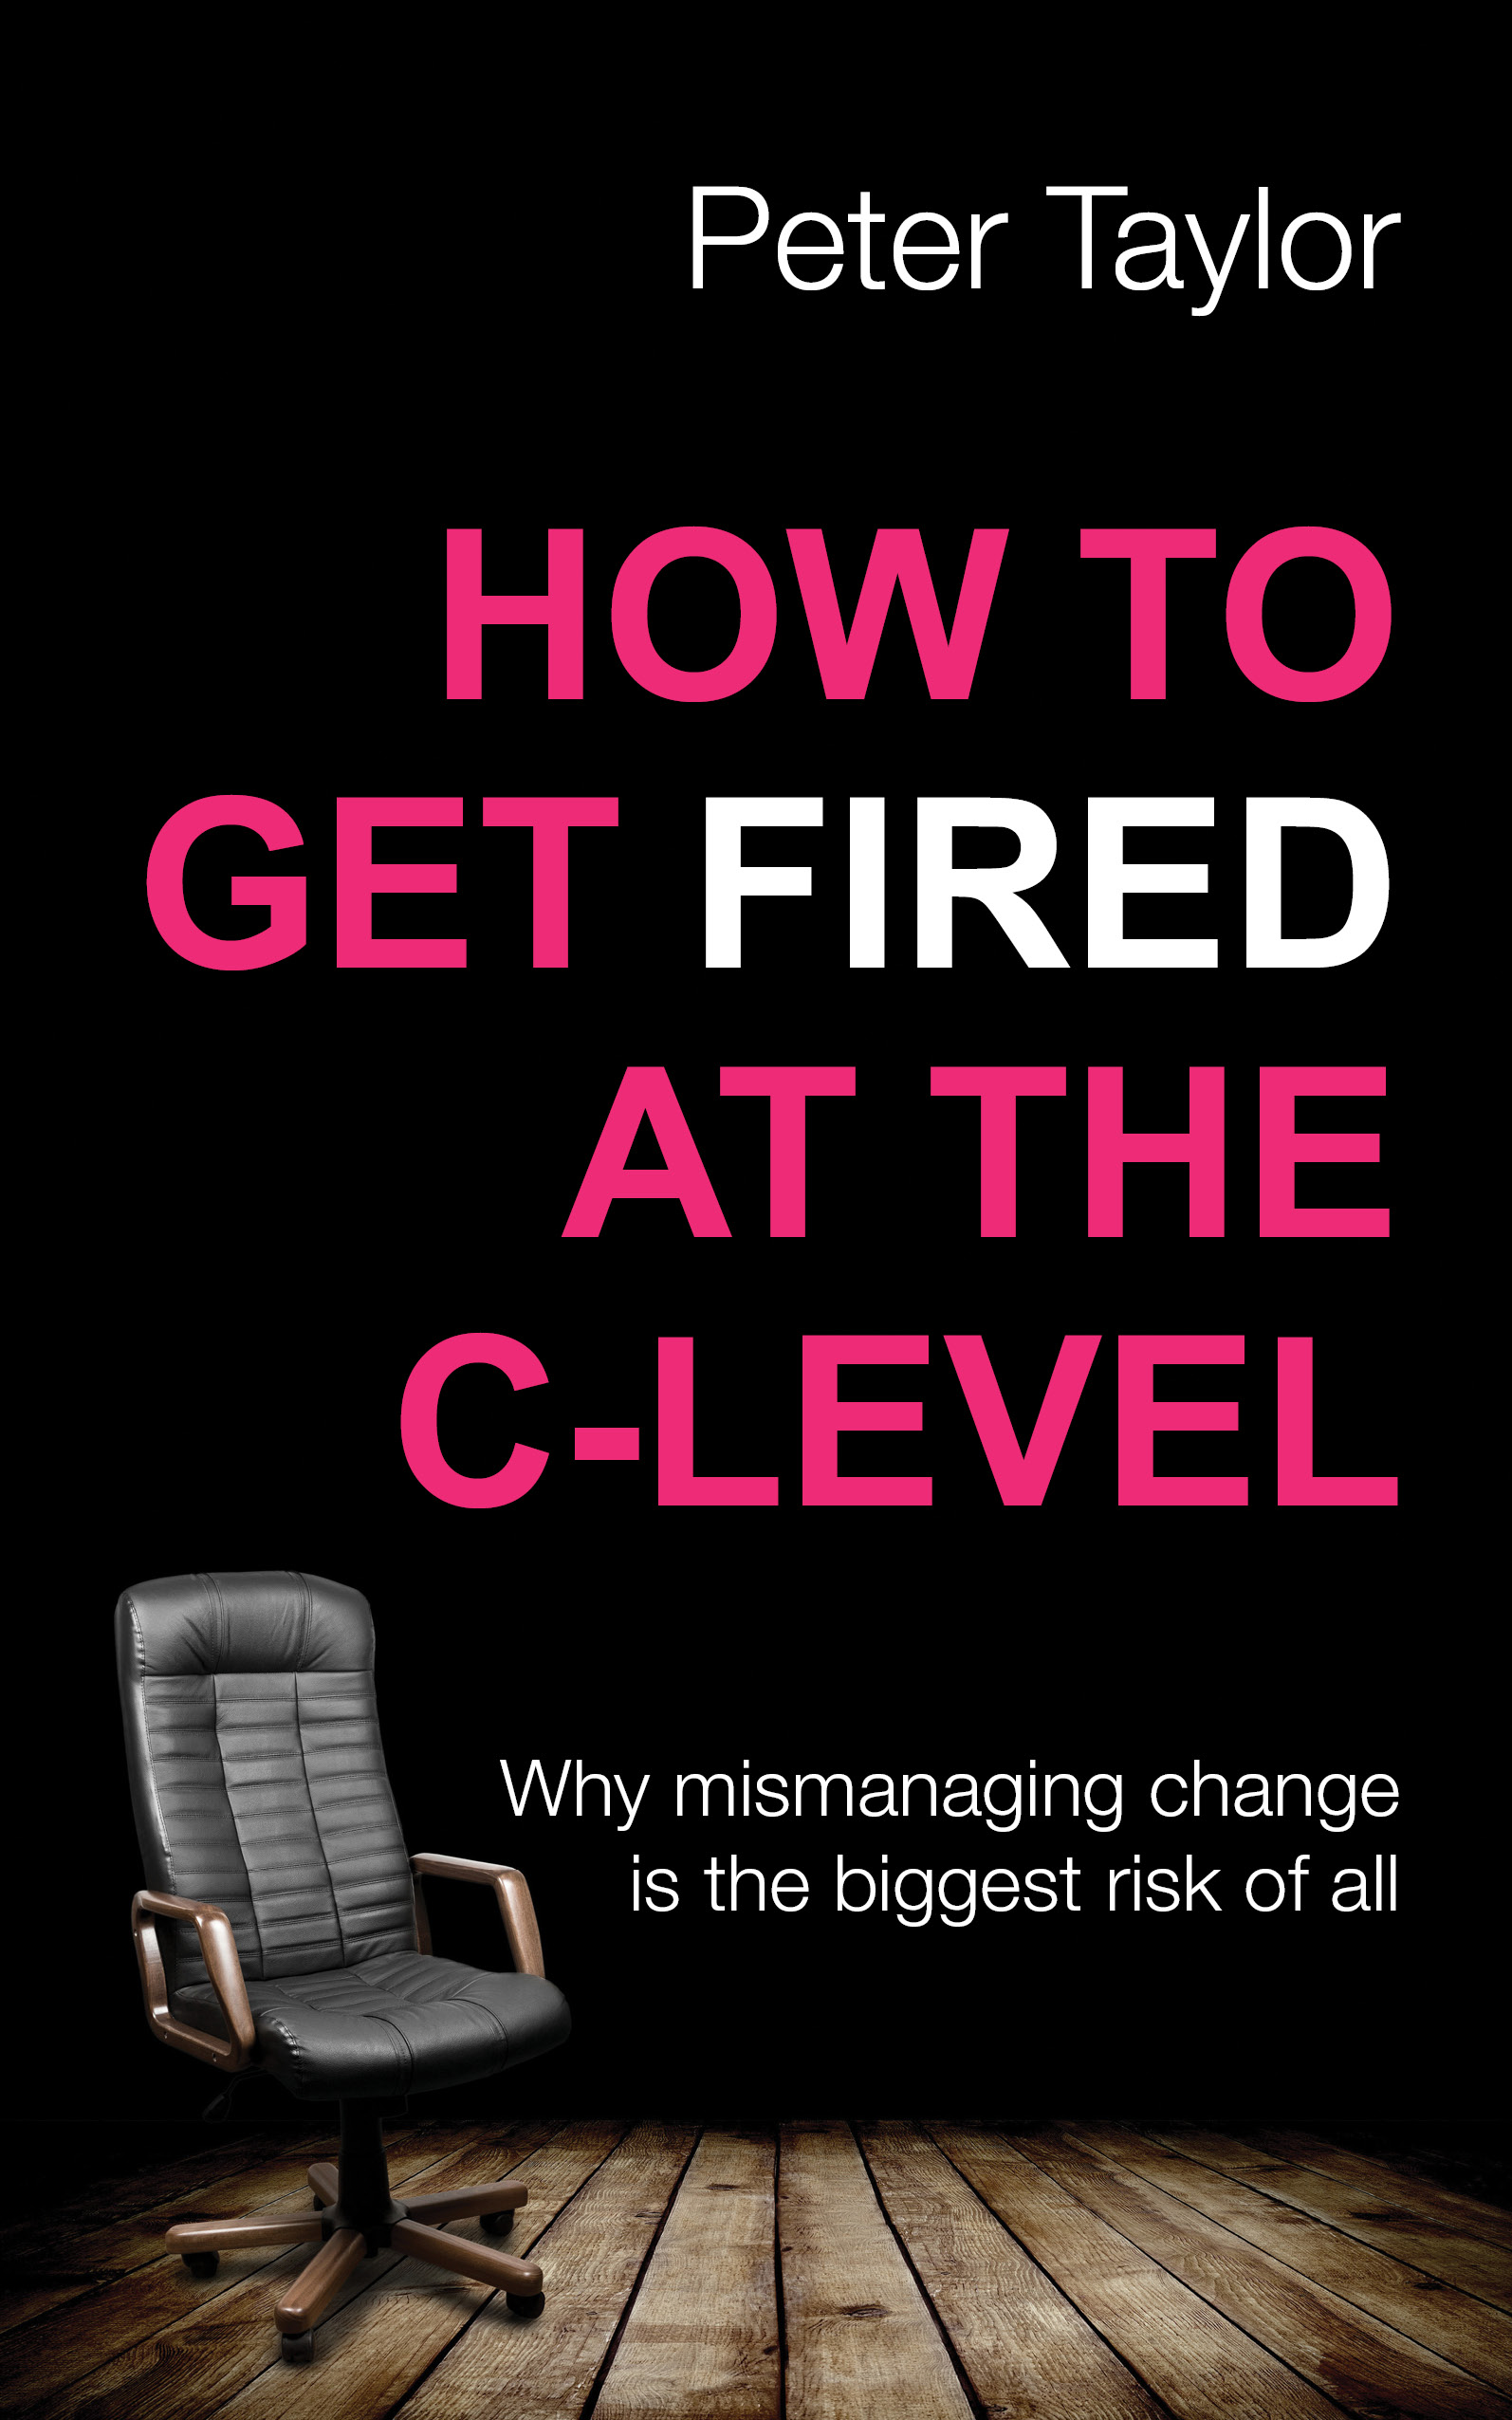 How to Get Fired at C-Level by Peter Taylor